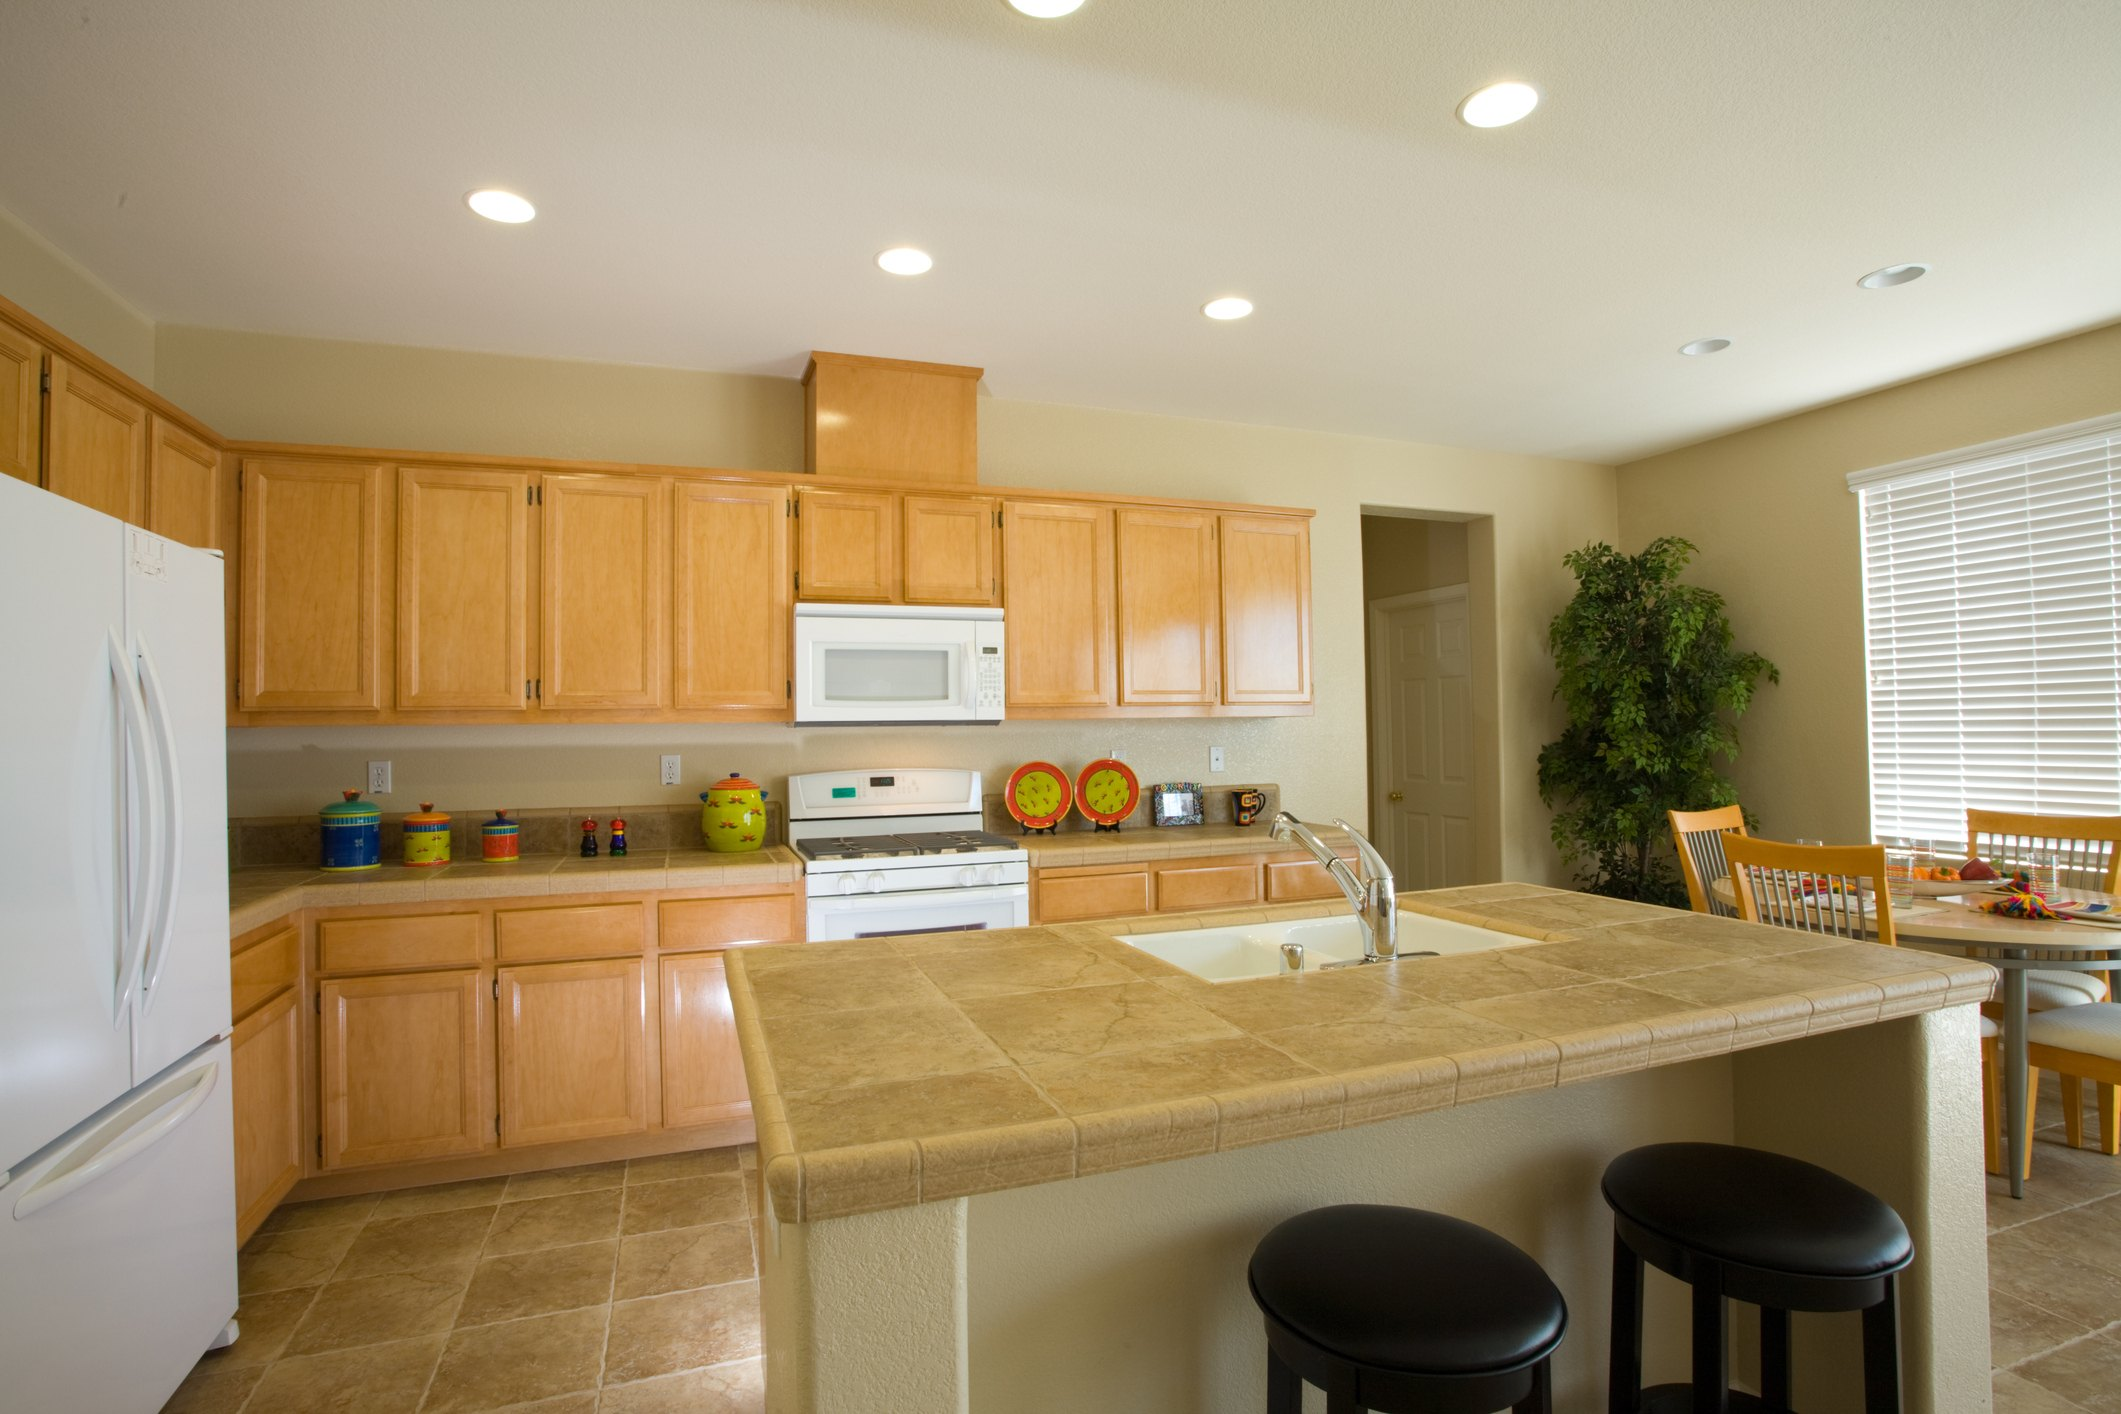 See How Kitchen Trends Have Drastically Changed Over the